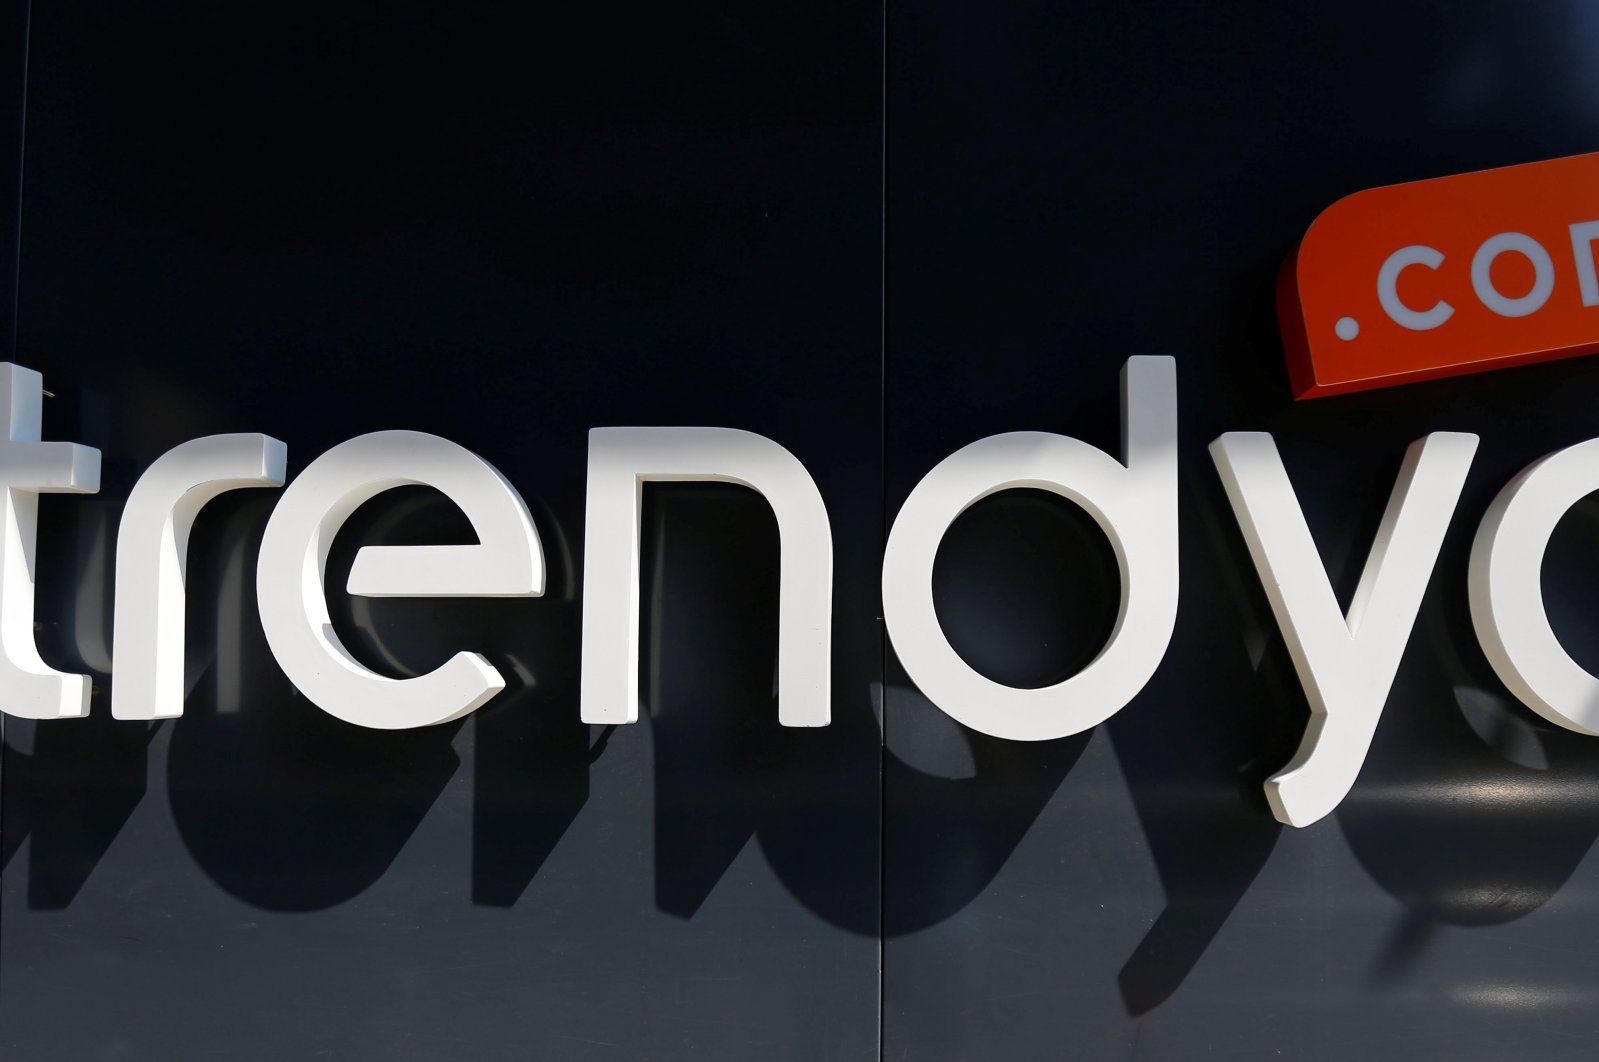 The logo of Turkey's leading e-commerce company Trendyol is pictured at the entrance of the company's headquarters in Istanbul, Turkey, June 22, 2016. (Reuters Photo)